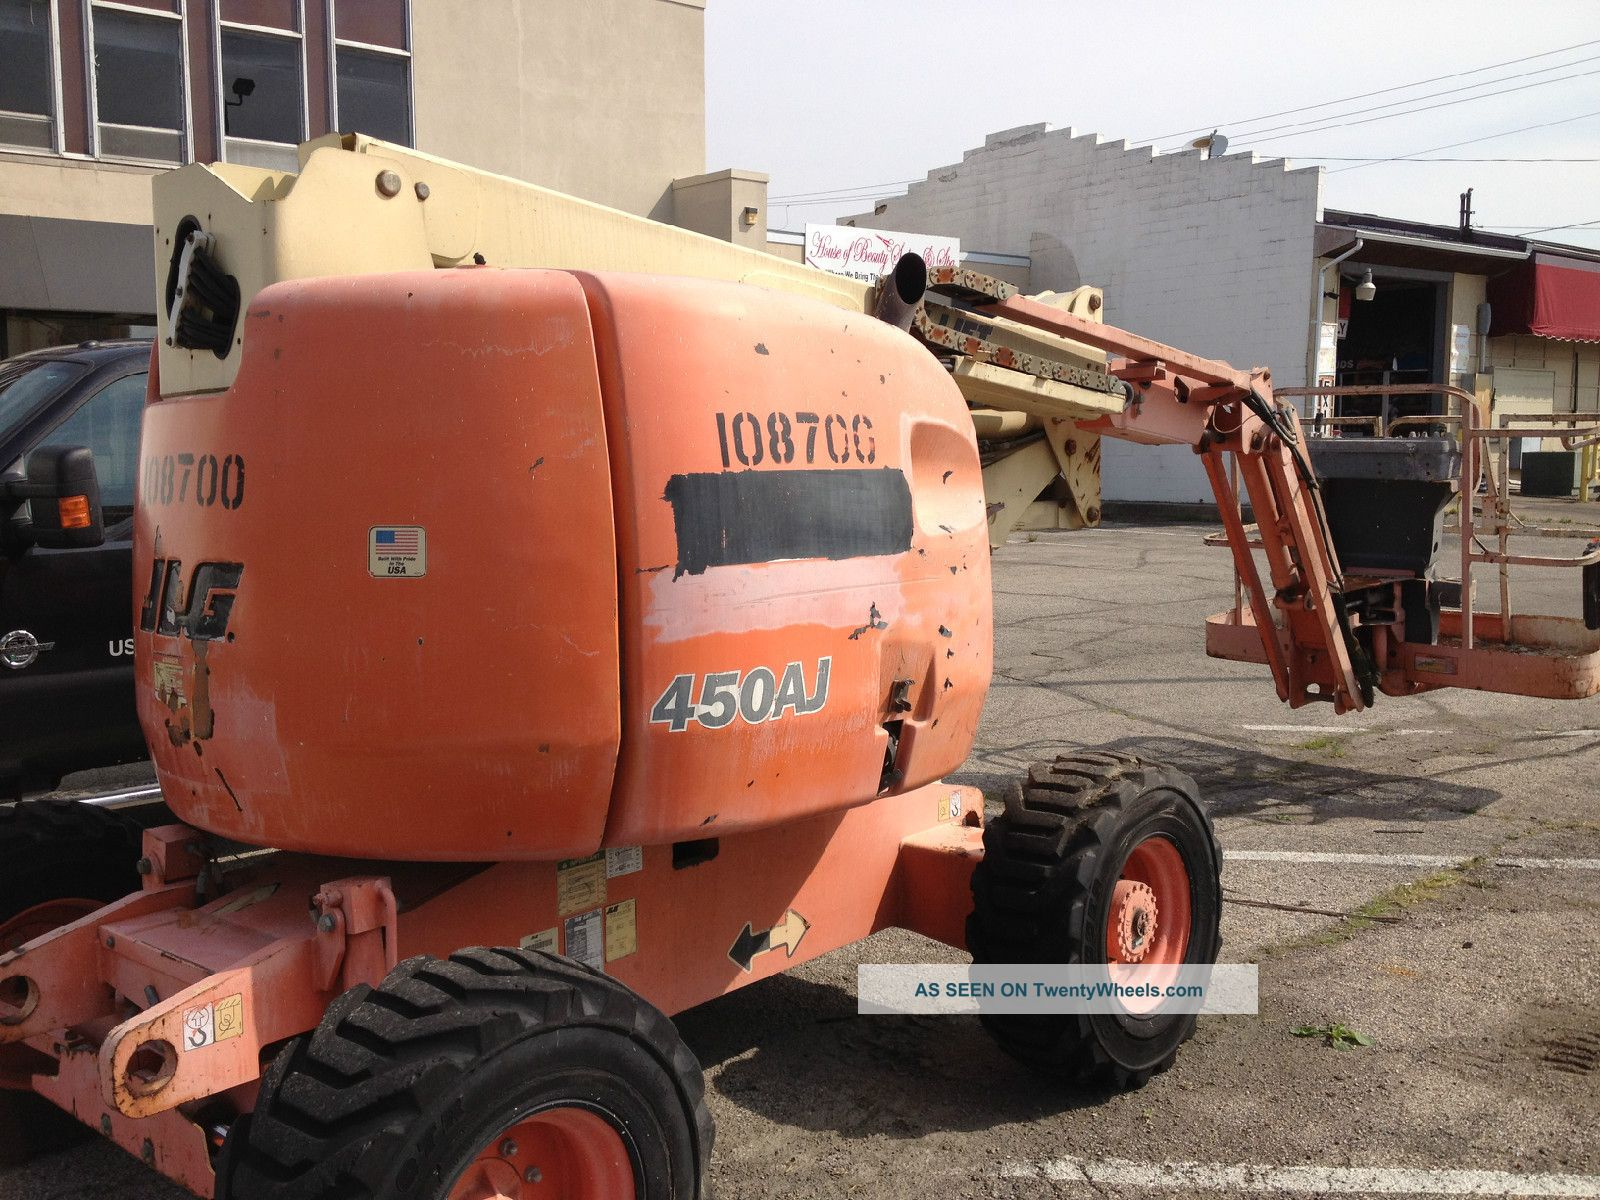 Jlg Boom Lift Man Lift Dual Fuel Gas/propane Genie Snorkel Scissor & Boom Lifts photo